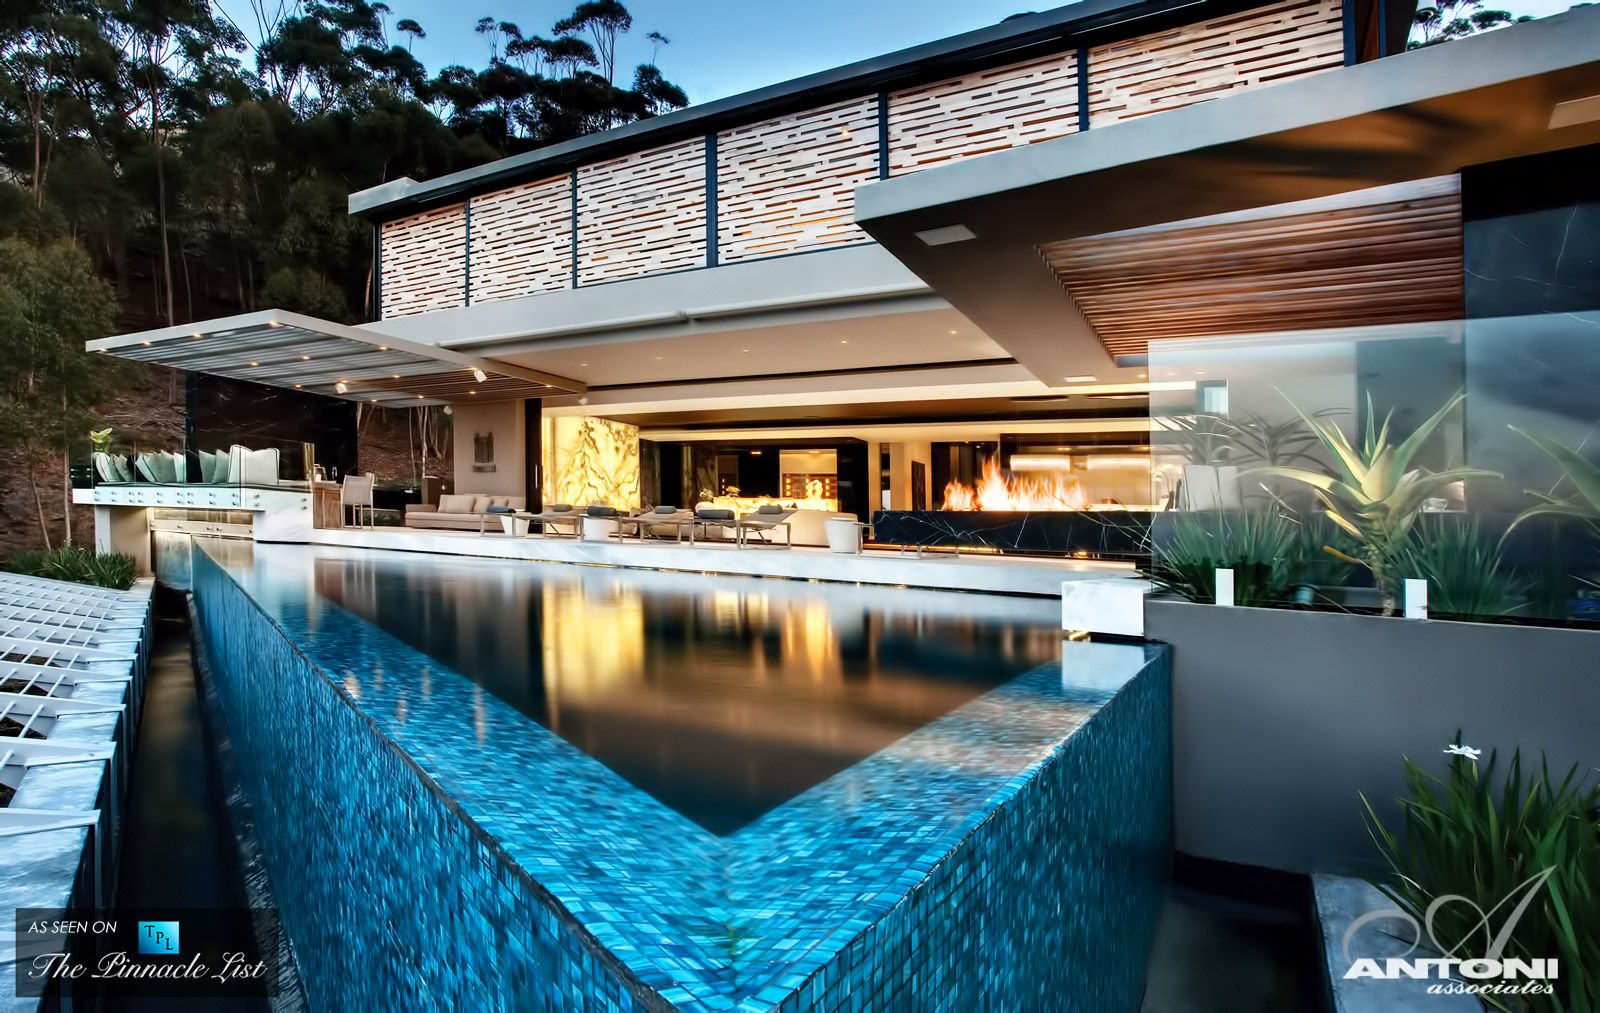 Head Road 1843 - Cape Town, Western Cape, South Africa | Architecture, Mansions  luxury, Luxury homes